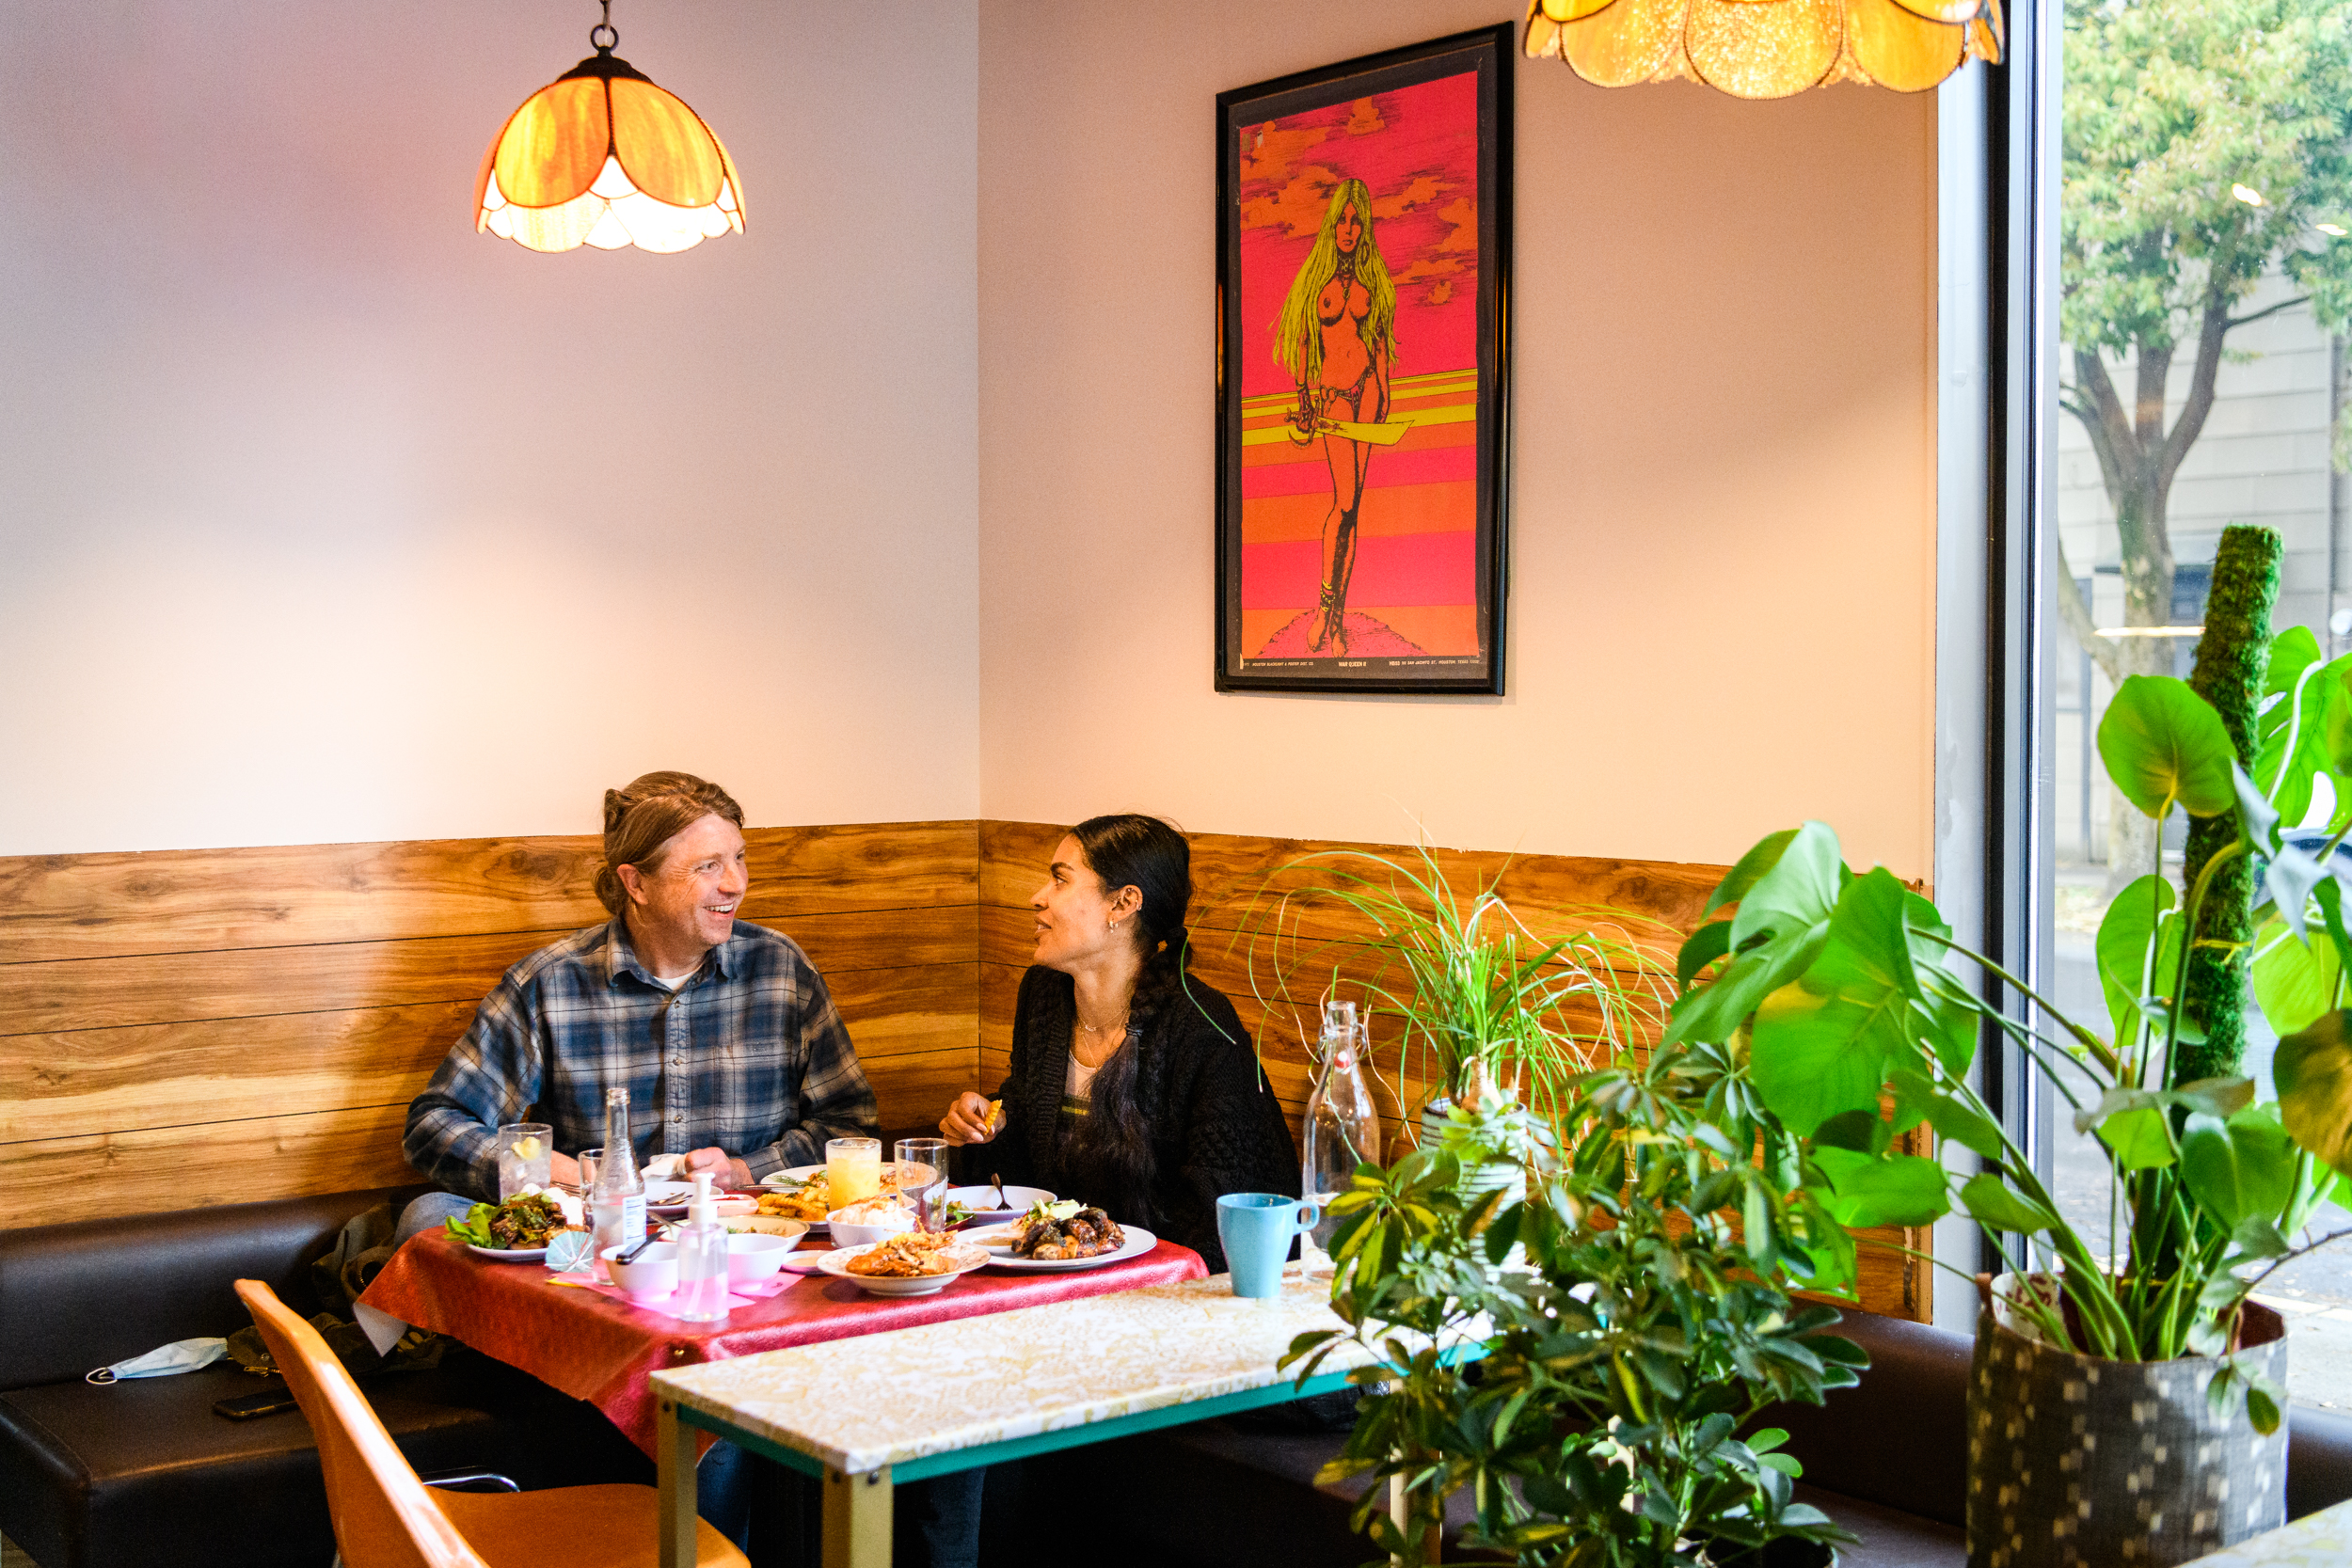 A man in a plaid shirt and a woman in a black shirt sit at a corner table at Oma's Hideaway eating food on pink trays.